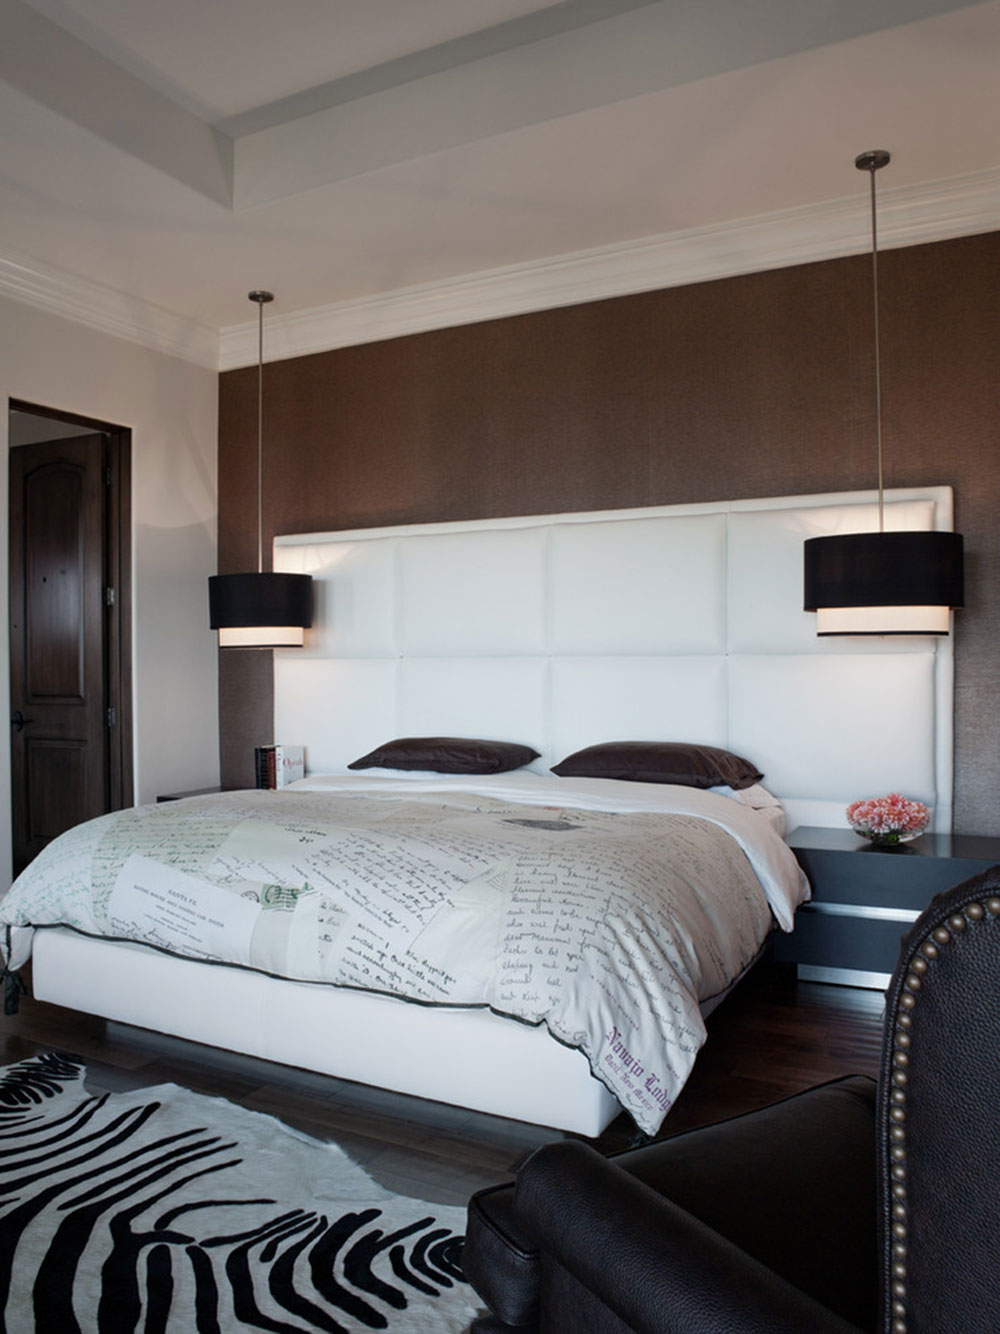 Bedroom Lighting Tips And Pictures 5